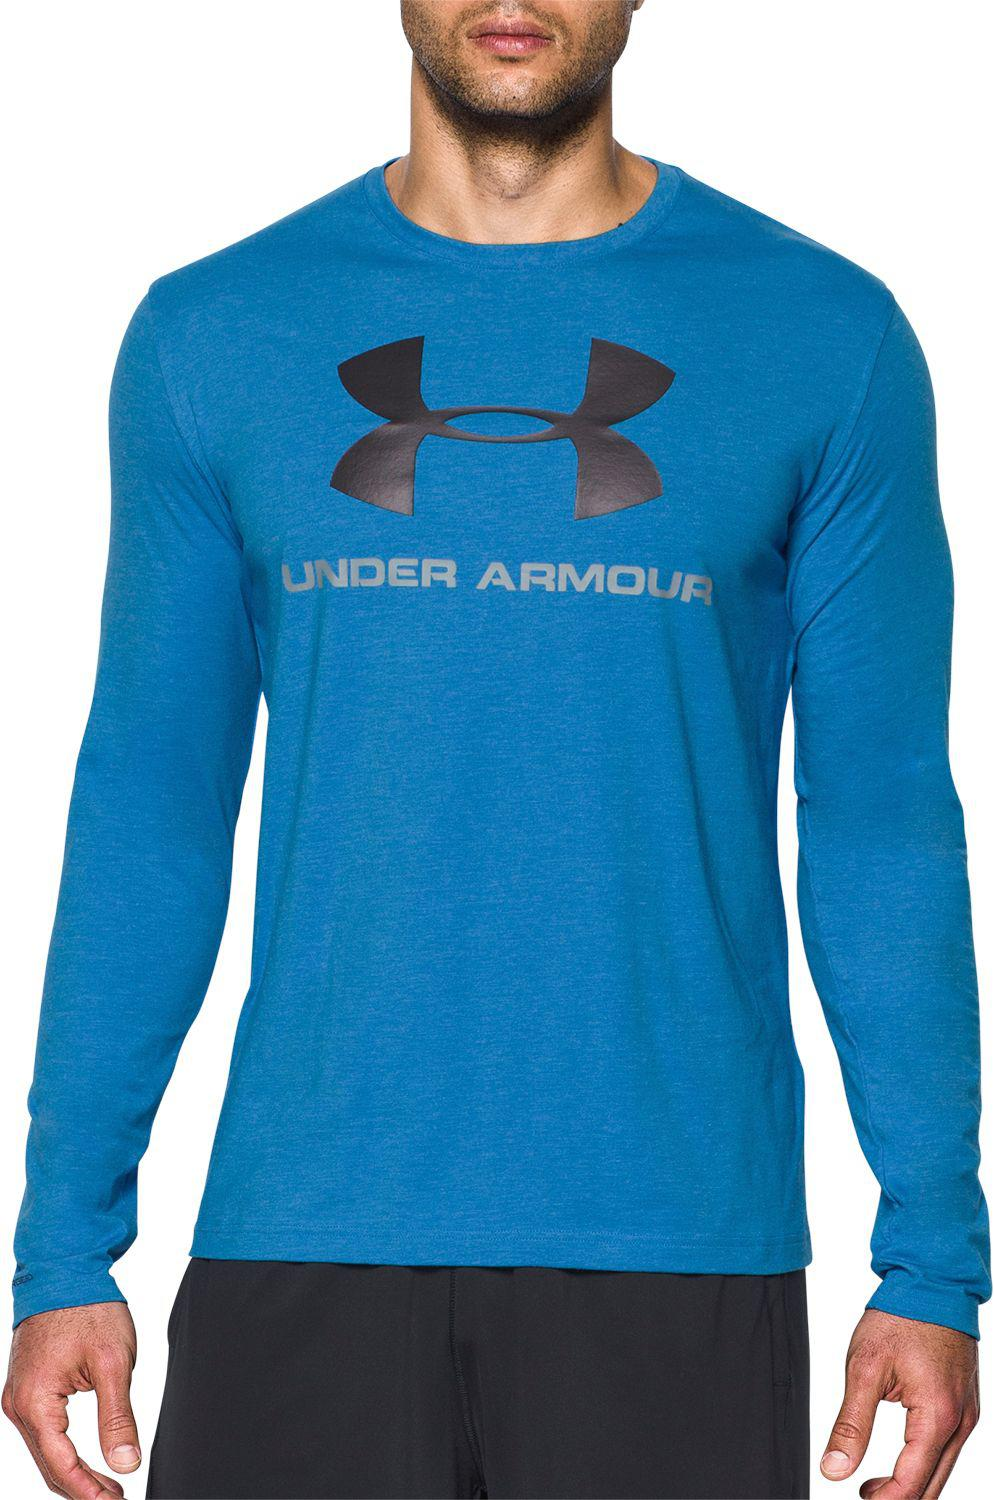 abd60f47 Lyst - Under Armour Sportstyle Logo Long Sleeve T-shirt in Blue for Men